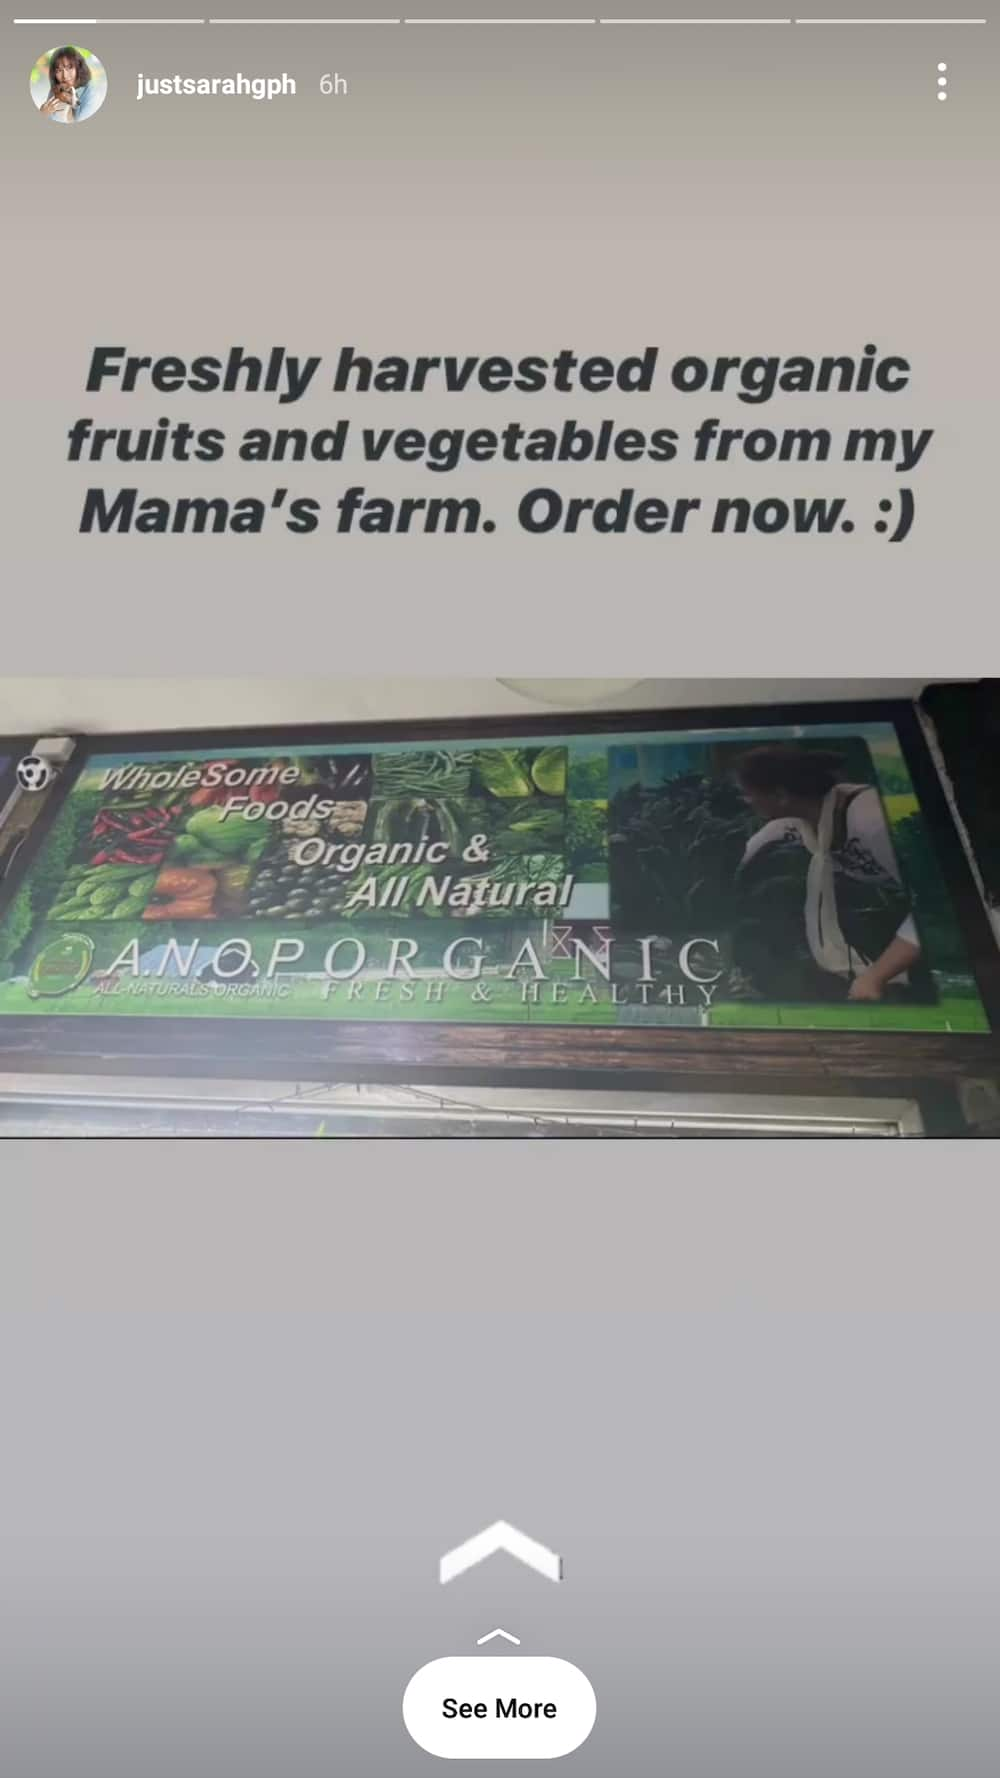 Sarah Geronimo advertised Mommy Divine's organic farm products after their supposed altercation last year